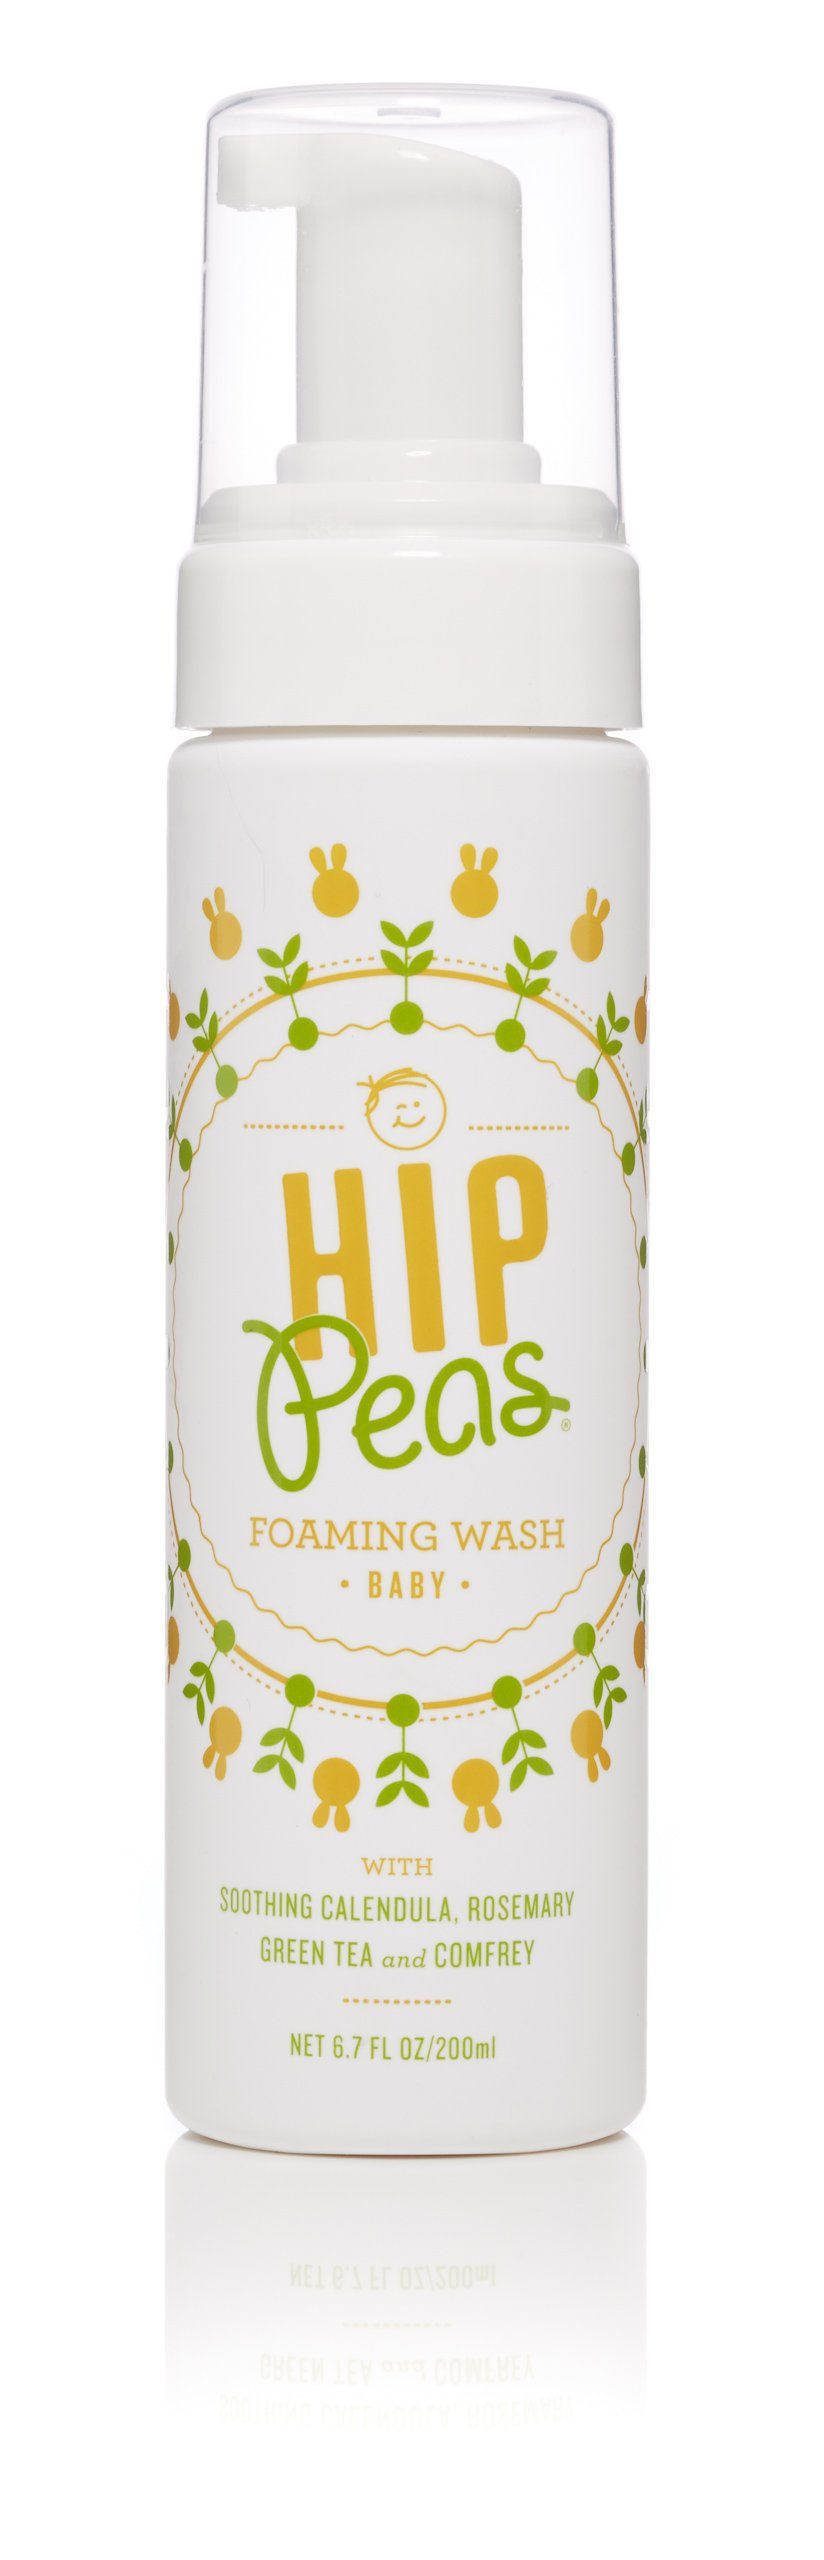 Hip Peas Natural Foaming Baby Wash   Safe & Effective for Babies and Children   100% toxin-free   Made in USA   6.7 oz pump